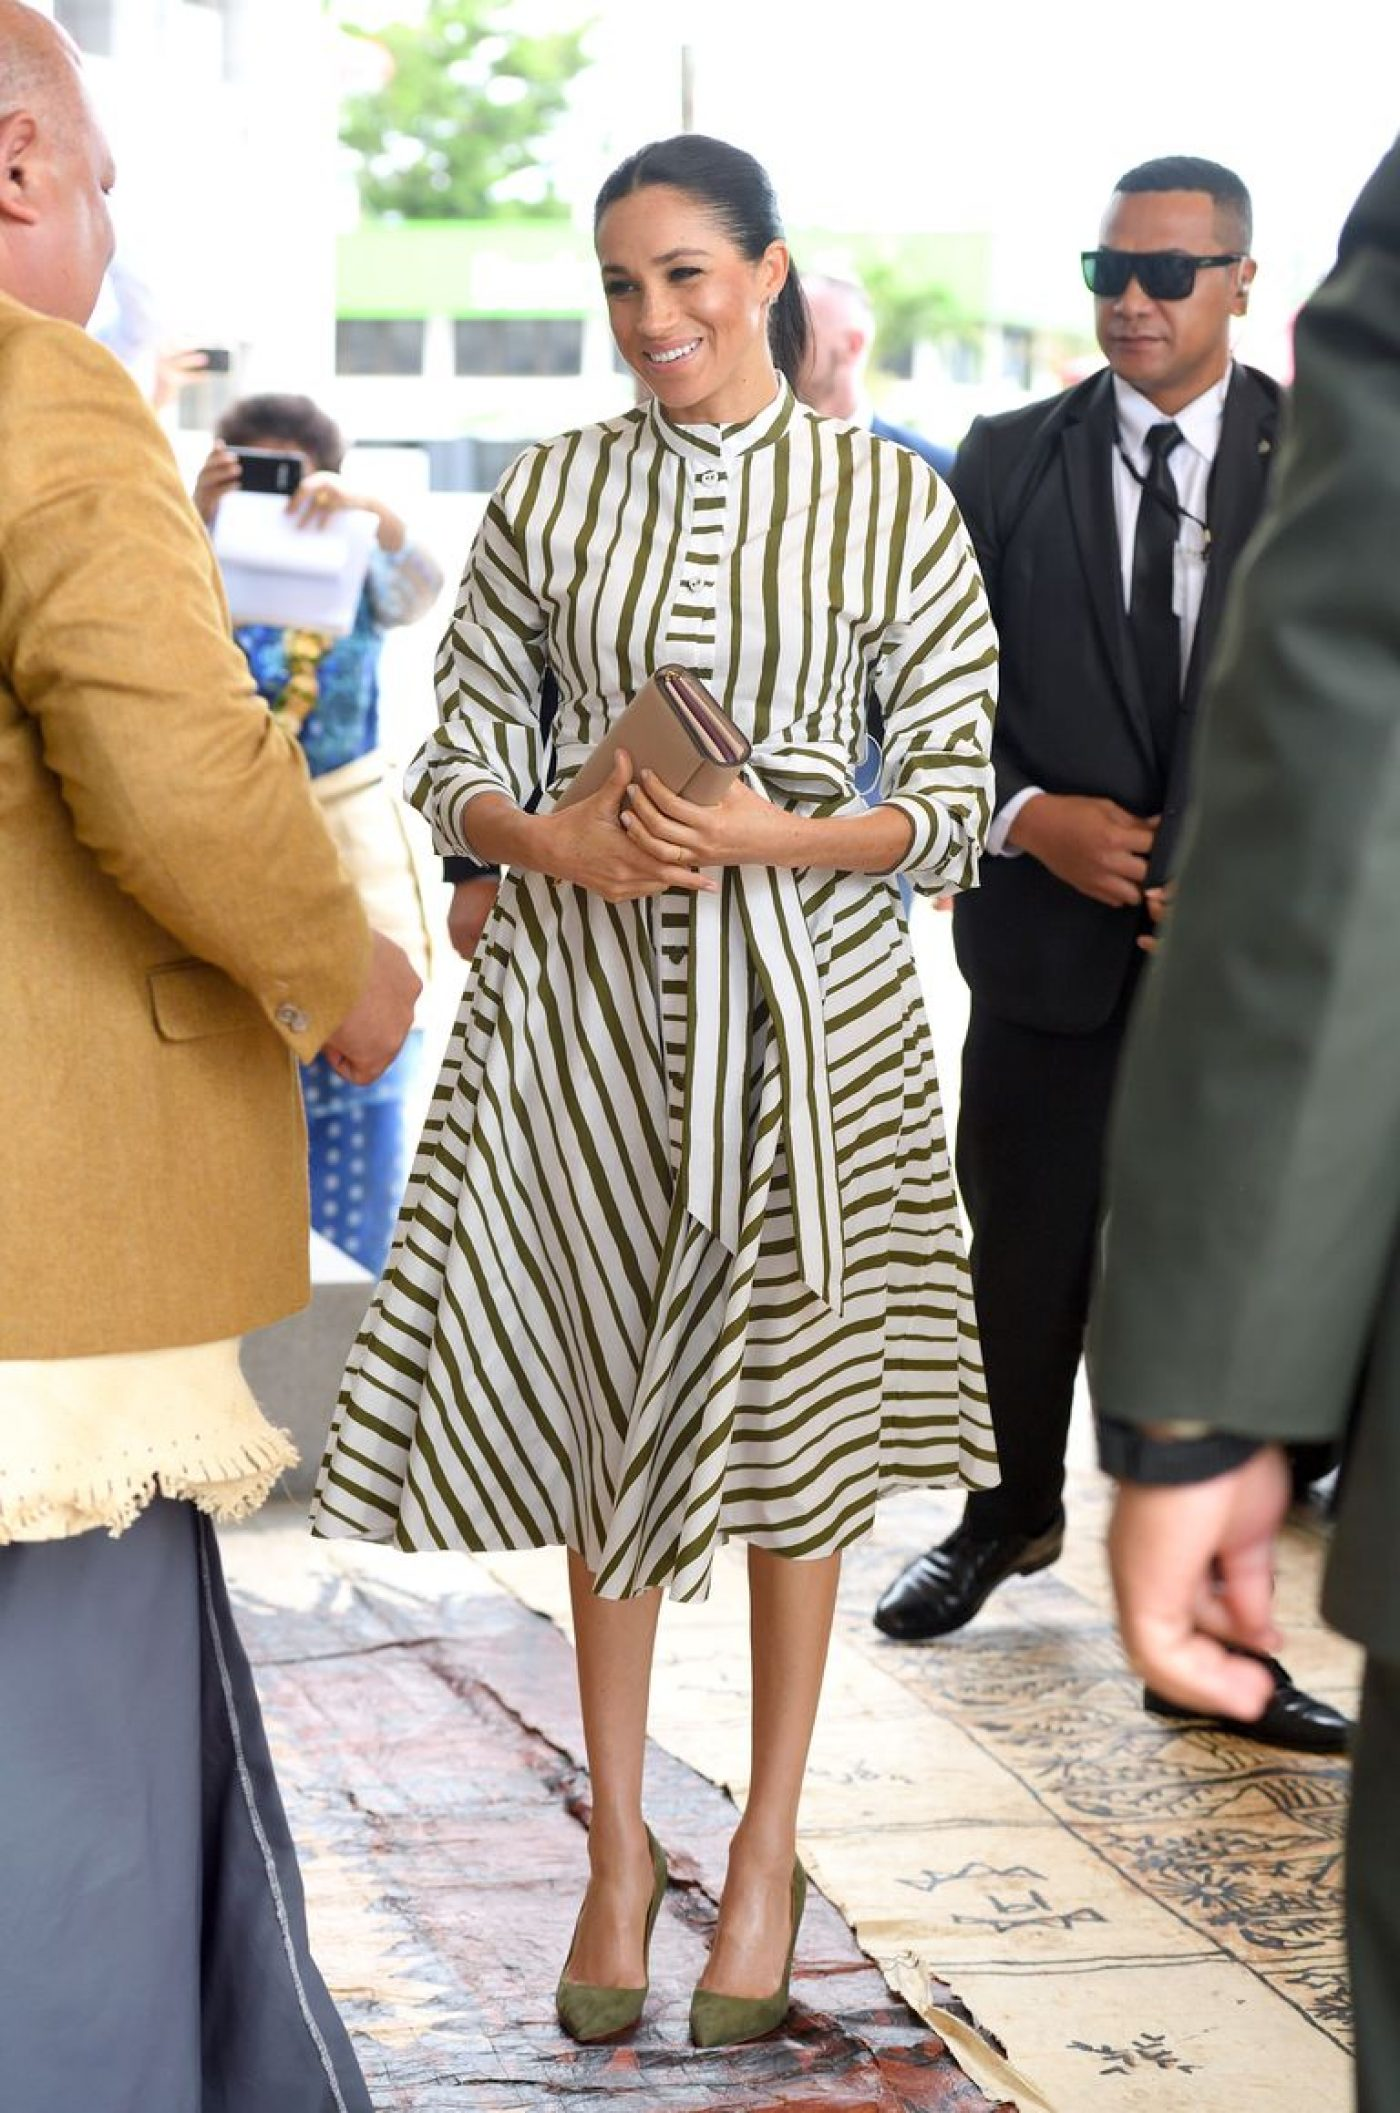 meghan-duchess-of-sussex-visits-the-st-george-building-to-news-photo-1053437998-15404990580